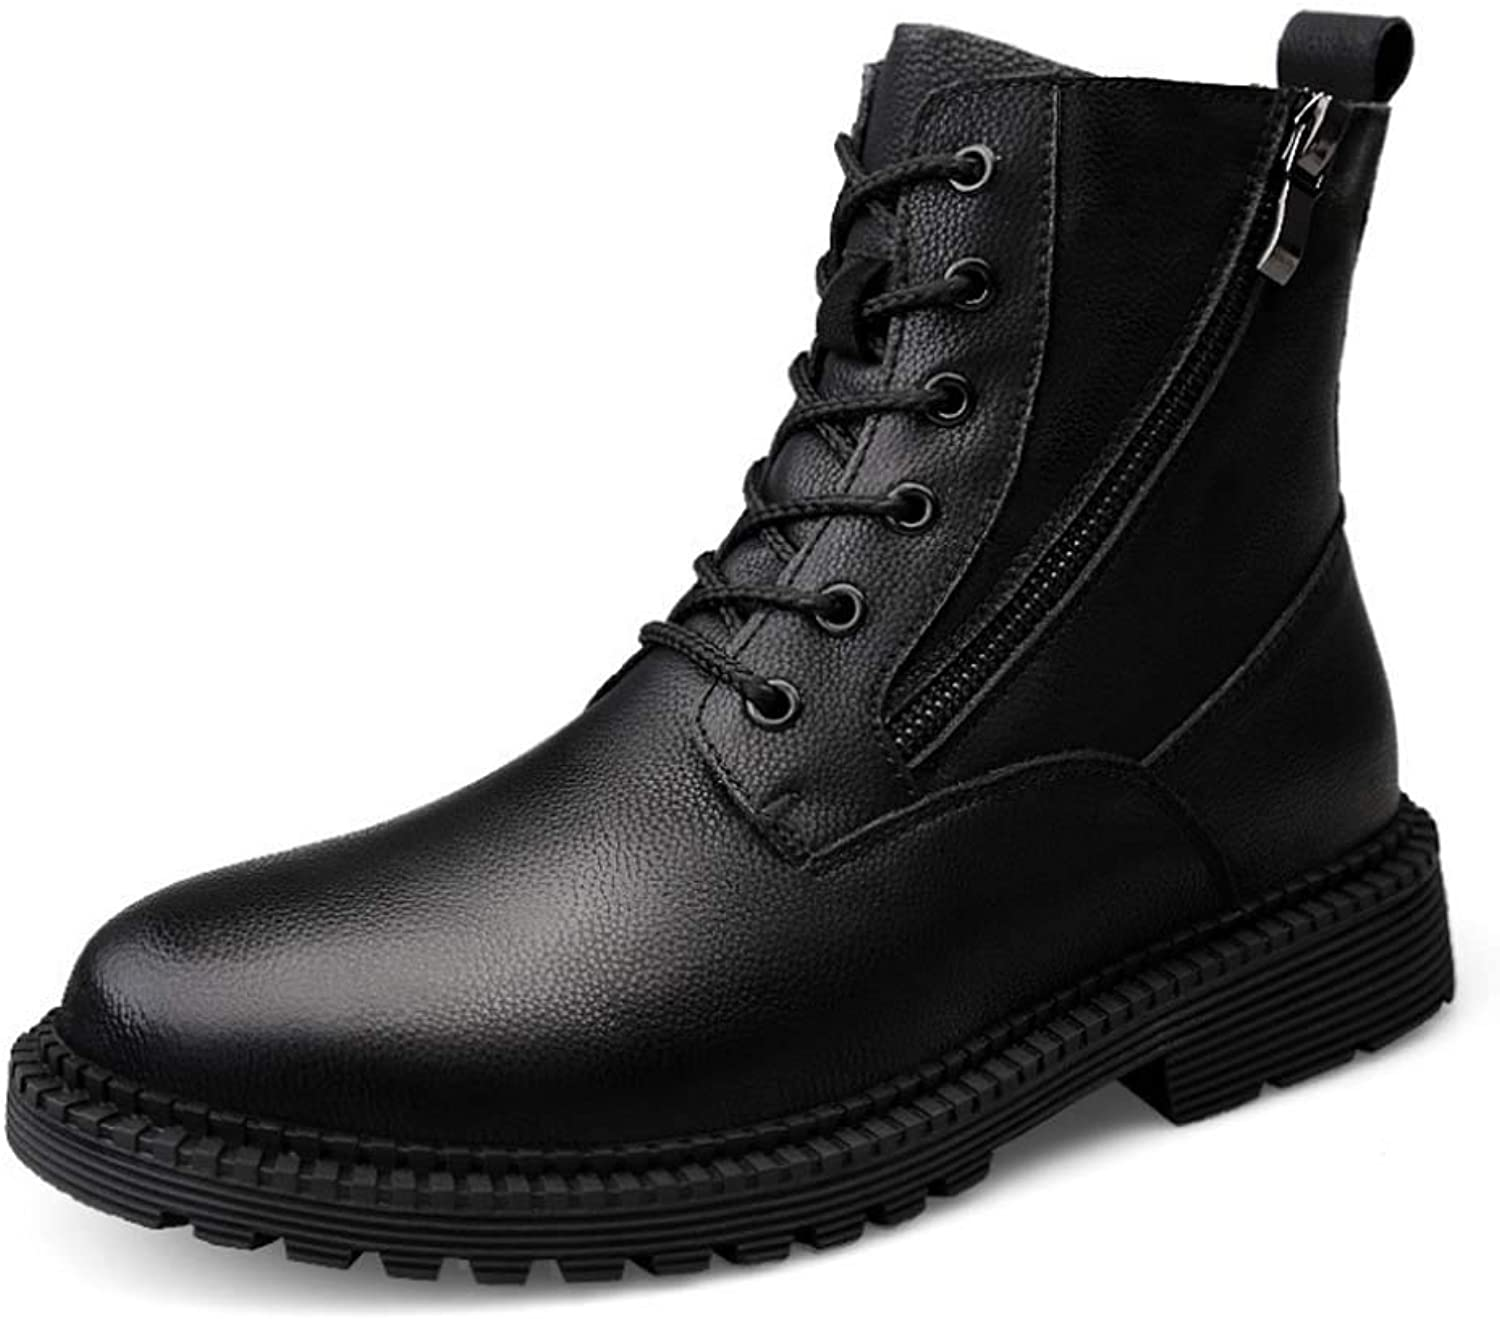 Men Martin Ankle Boots Lace-up Chunky Heel Buckles Boots Military Style Fashion Outdoor Casual Waterproof Hiking Footwear